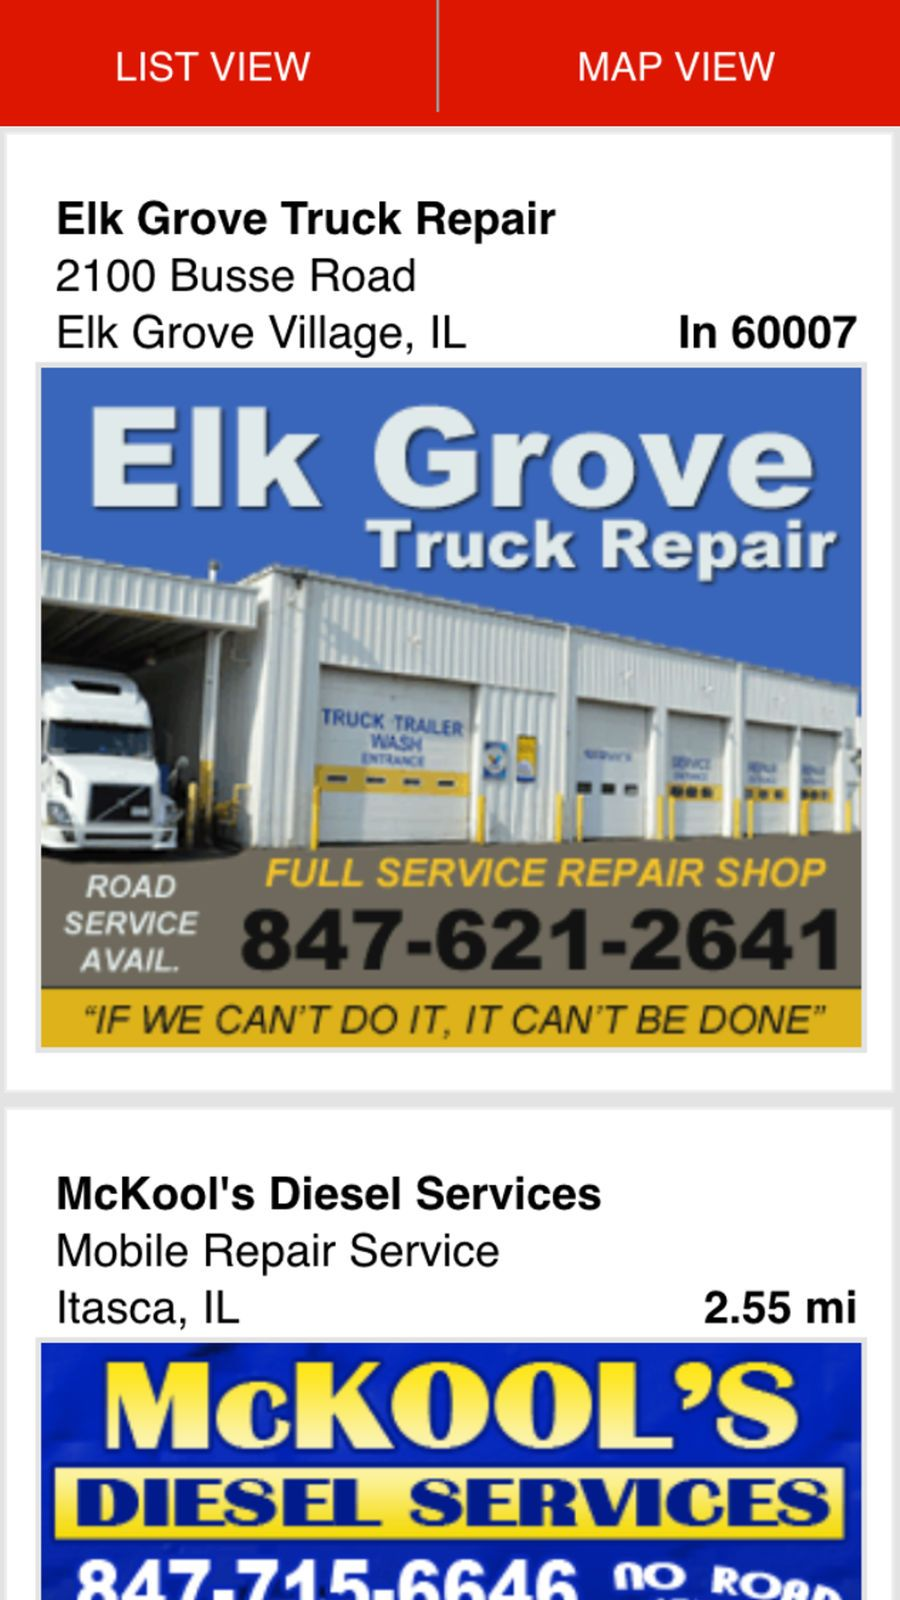 Find Truck Service Trucks, Truck repair, Games for toddlers